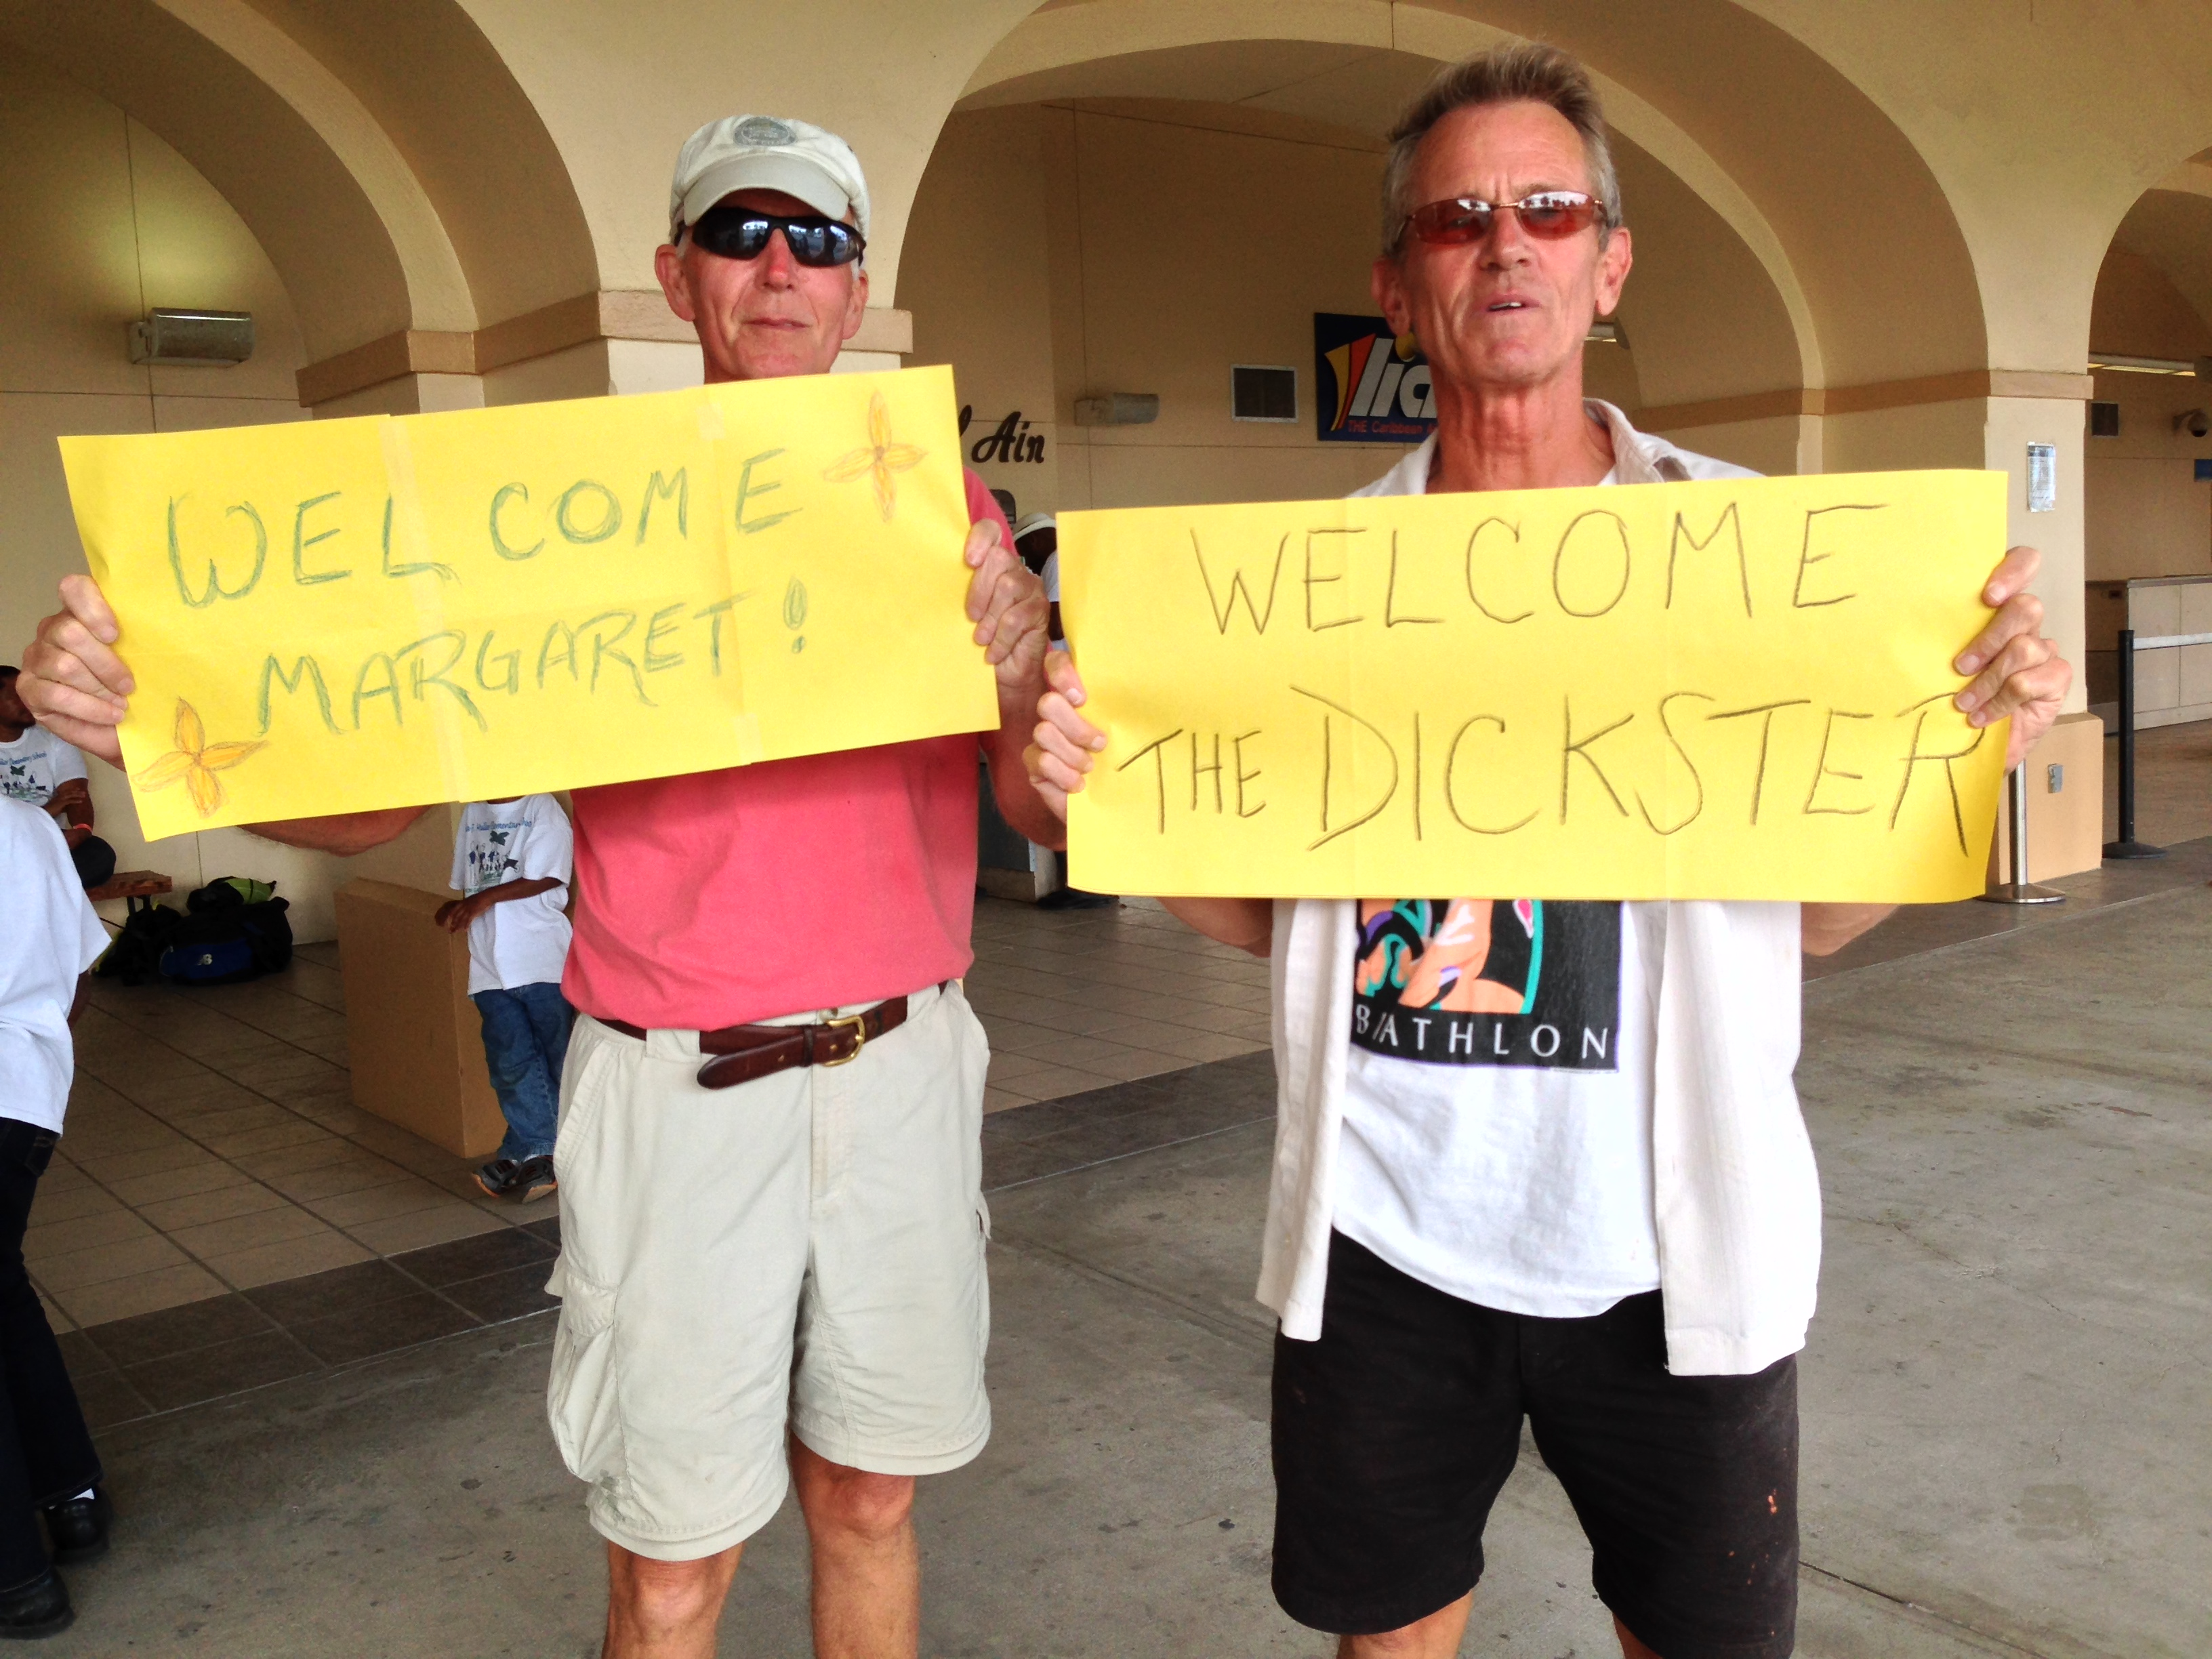 Our airport greeting. And teasing about my nickname for my husband from the very beginning!